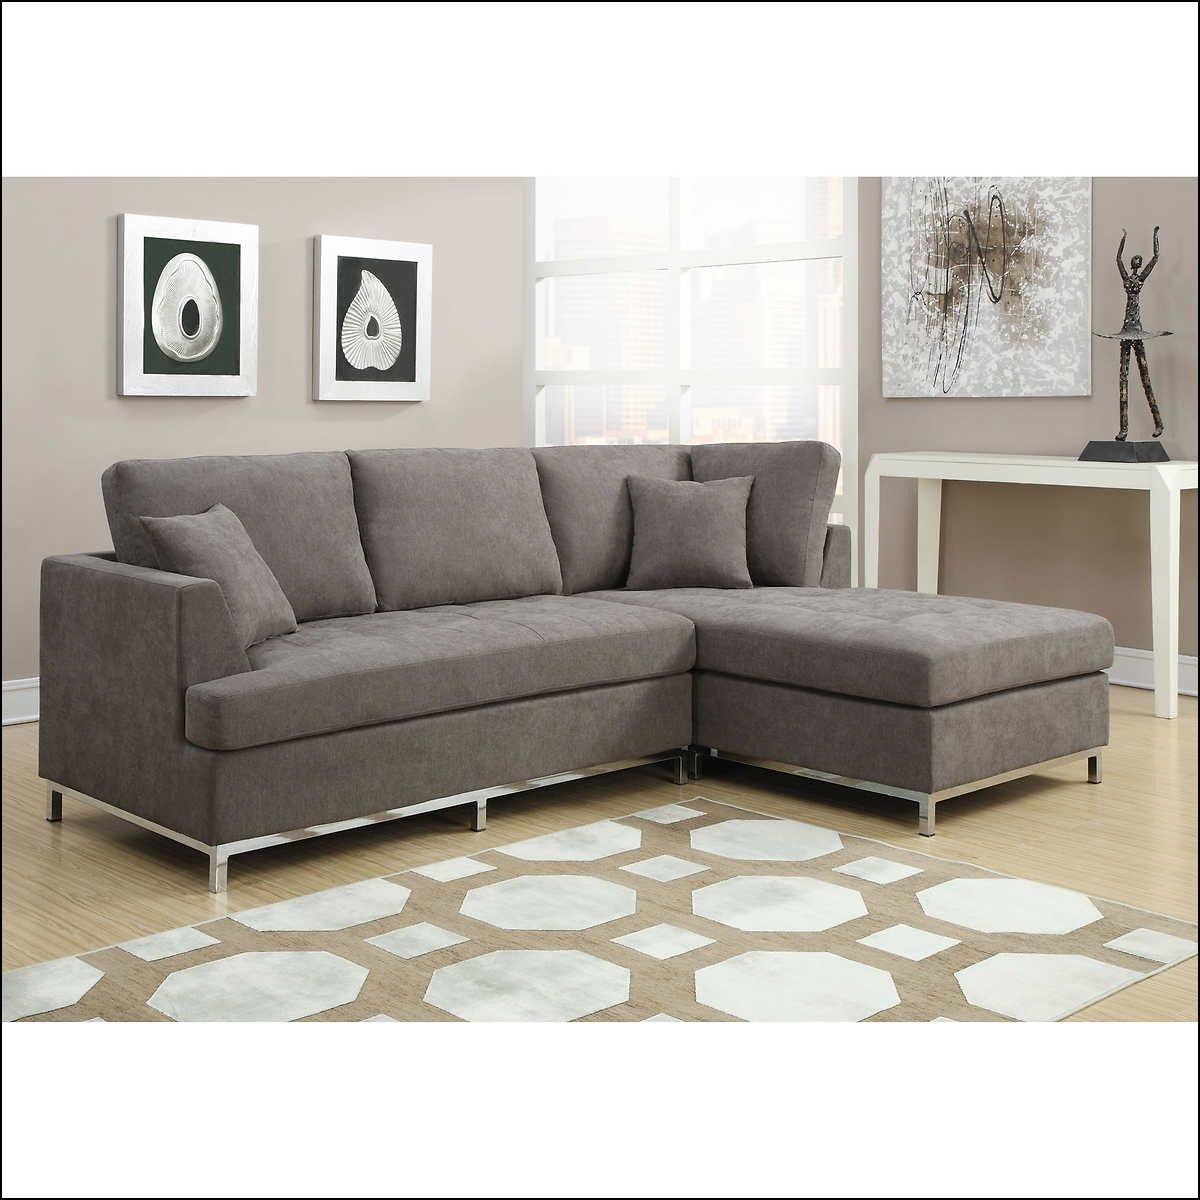 Sectional couch costco